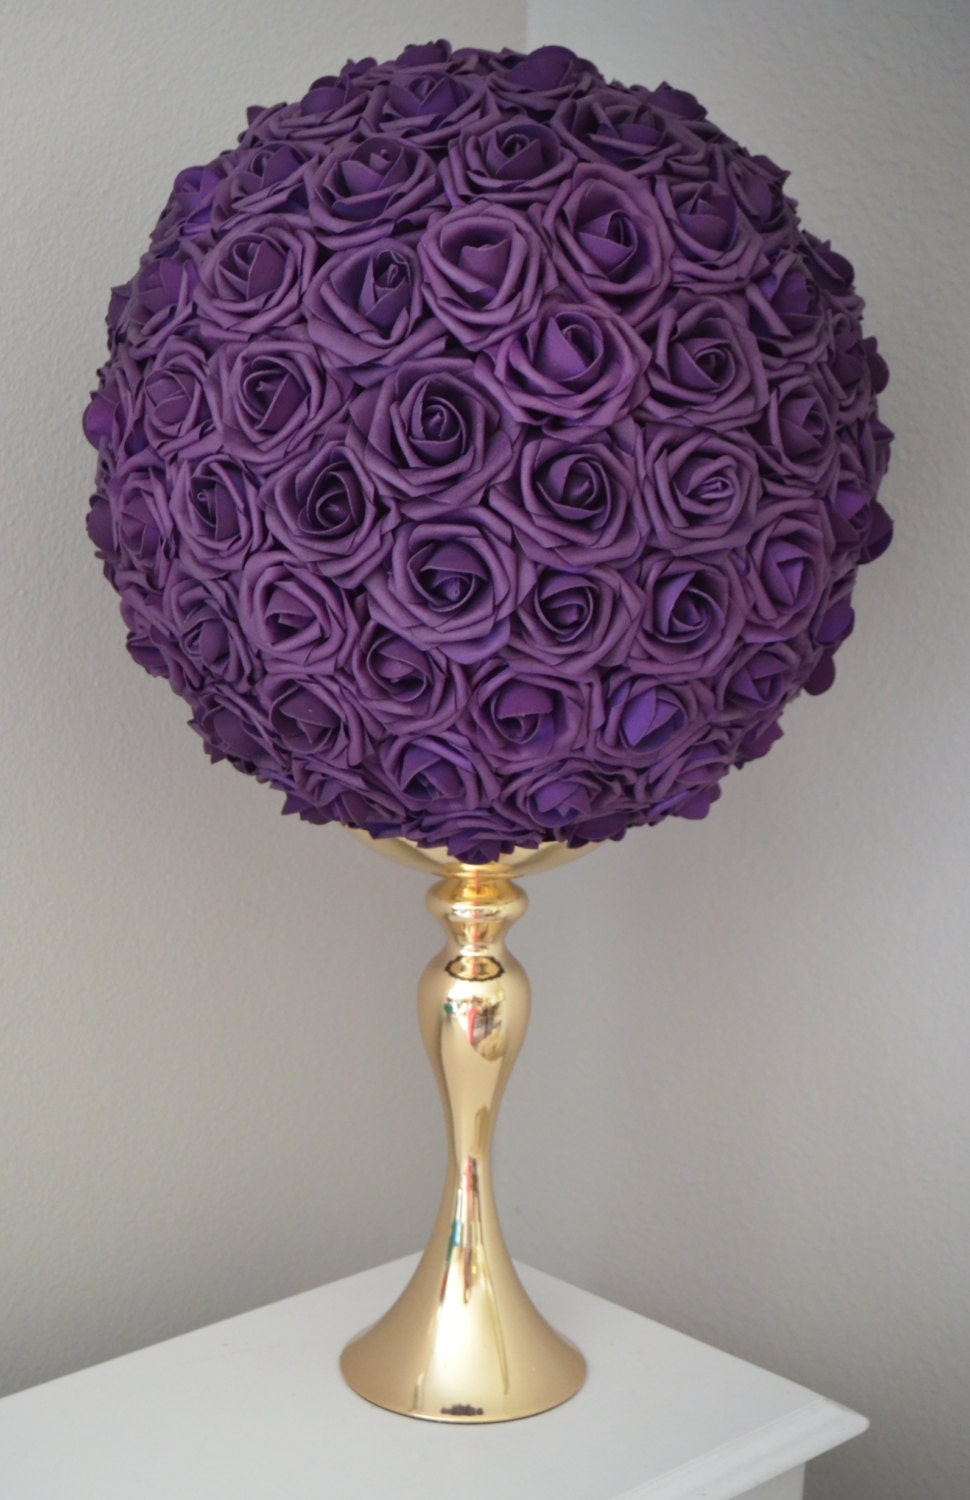 Eggplant purple flower ball wedding centerpiece